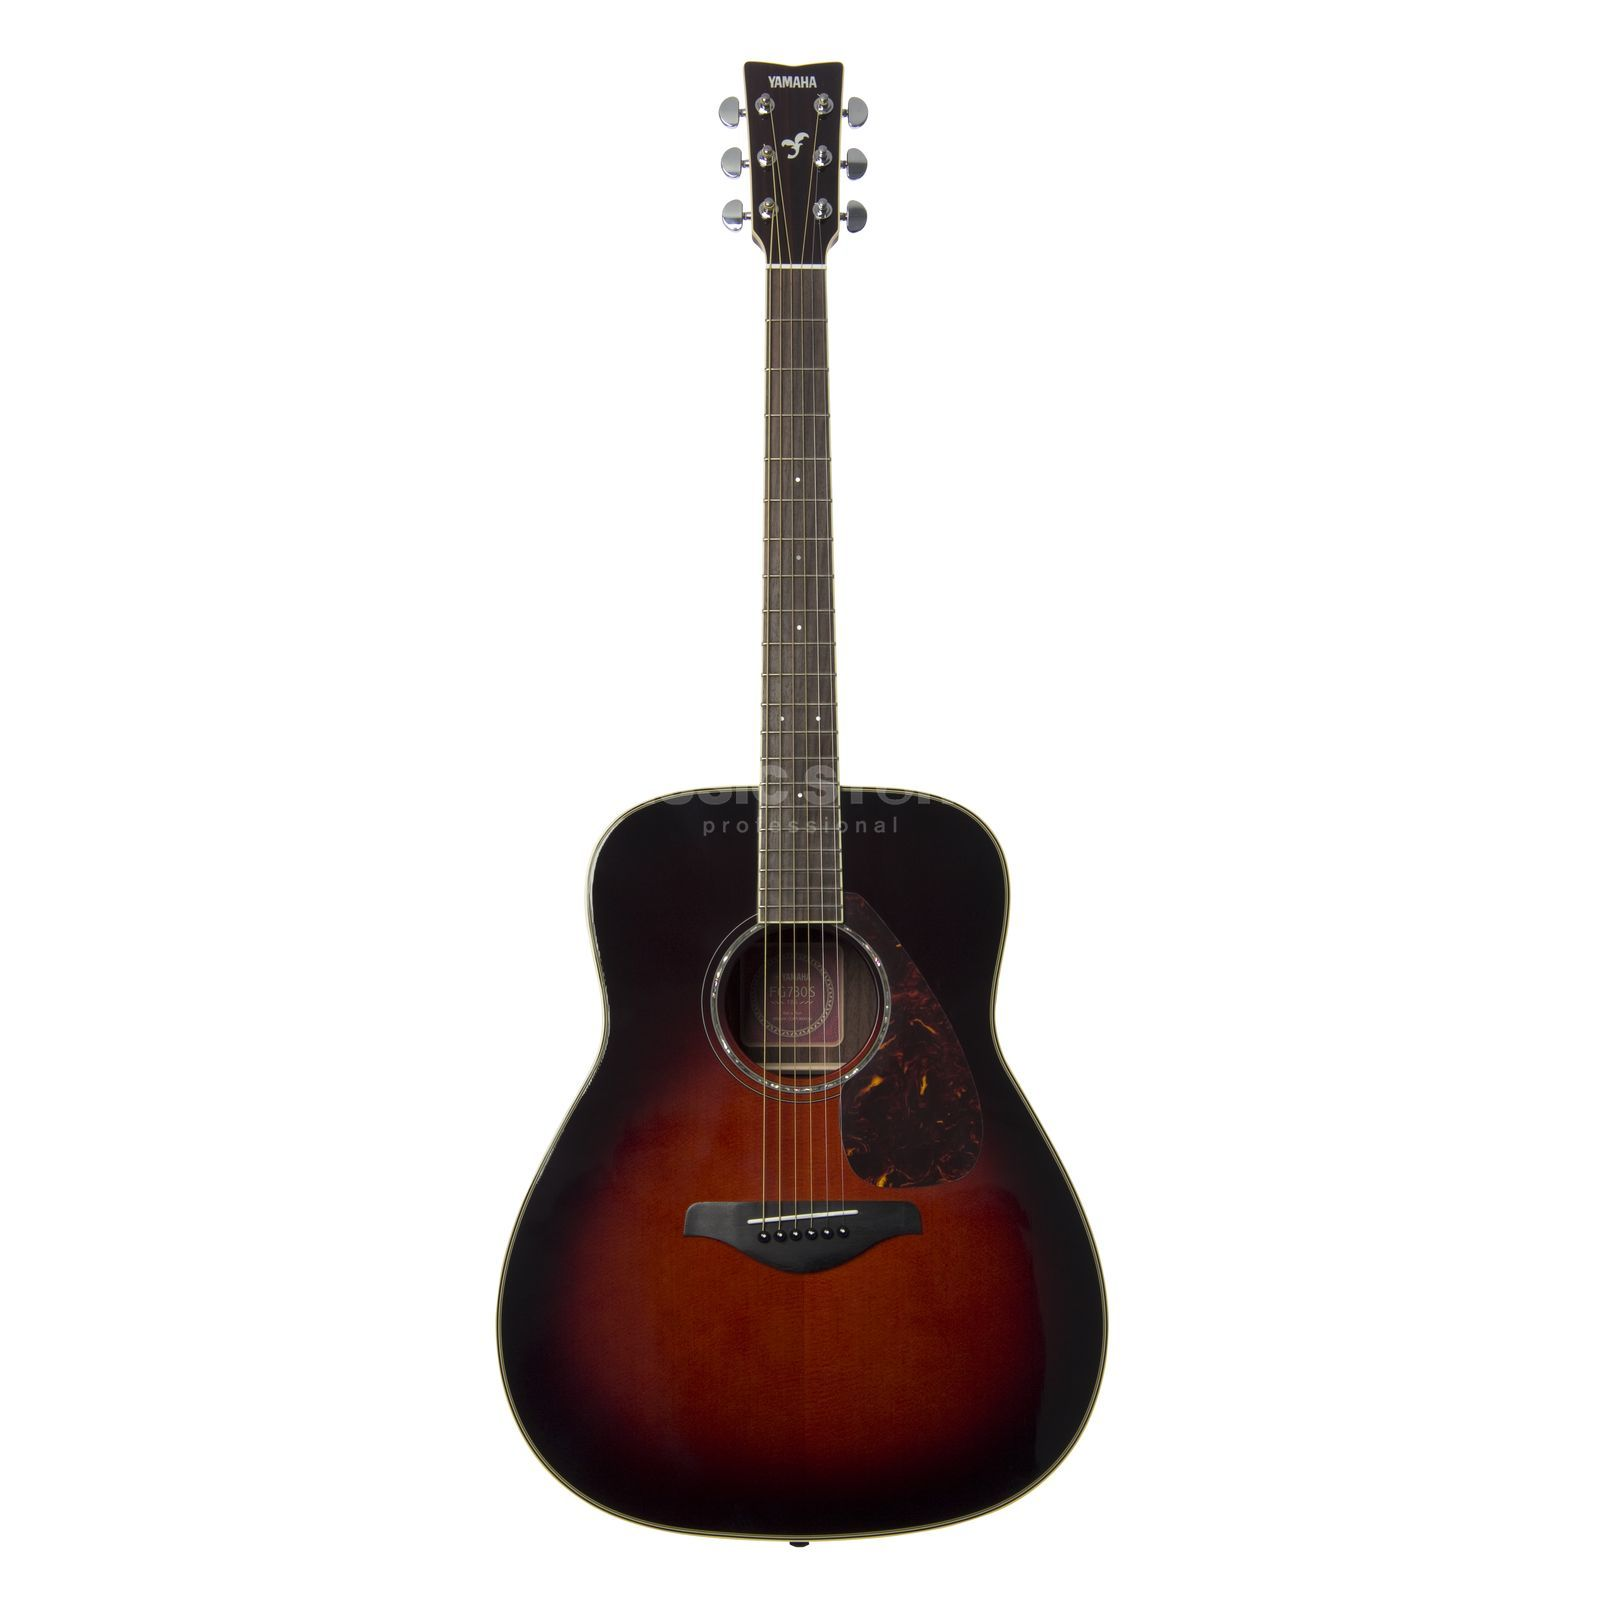 Yamaha FG730S Acoustic Guitar, Tobacc o Brown Sunburst   Produktbillede